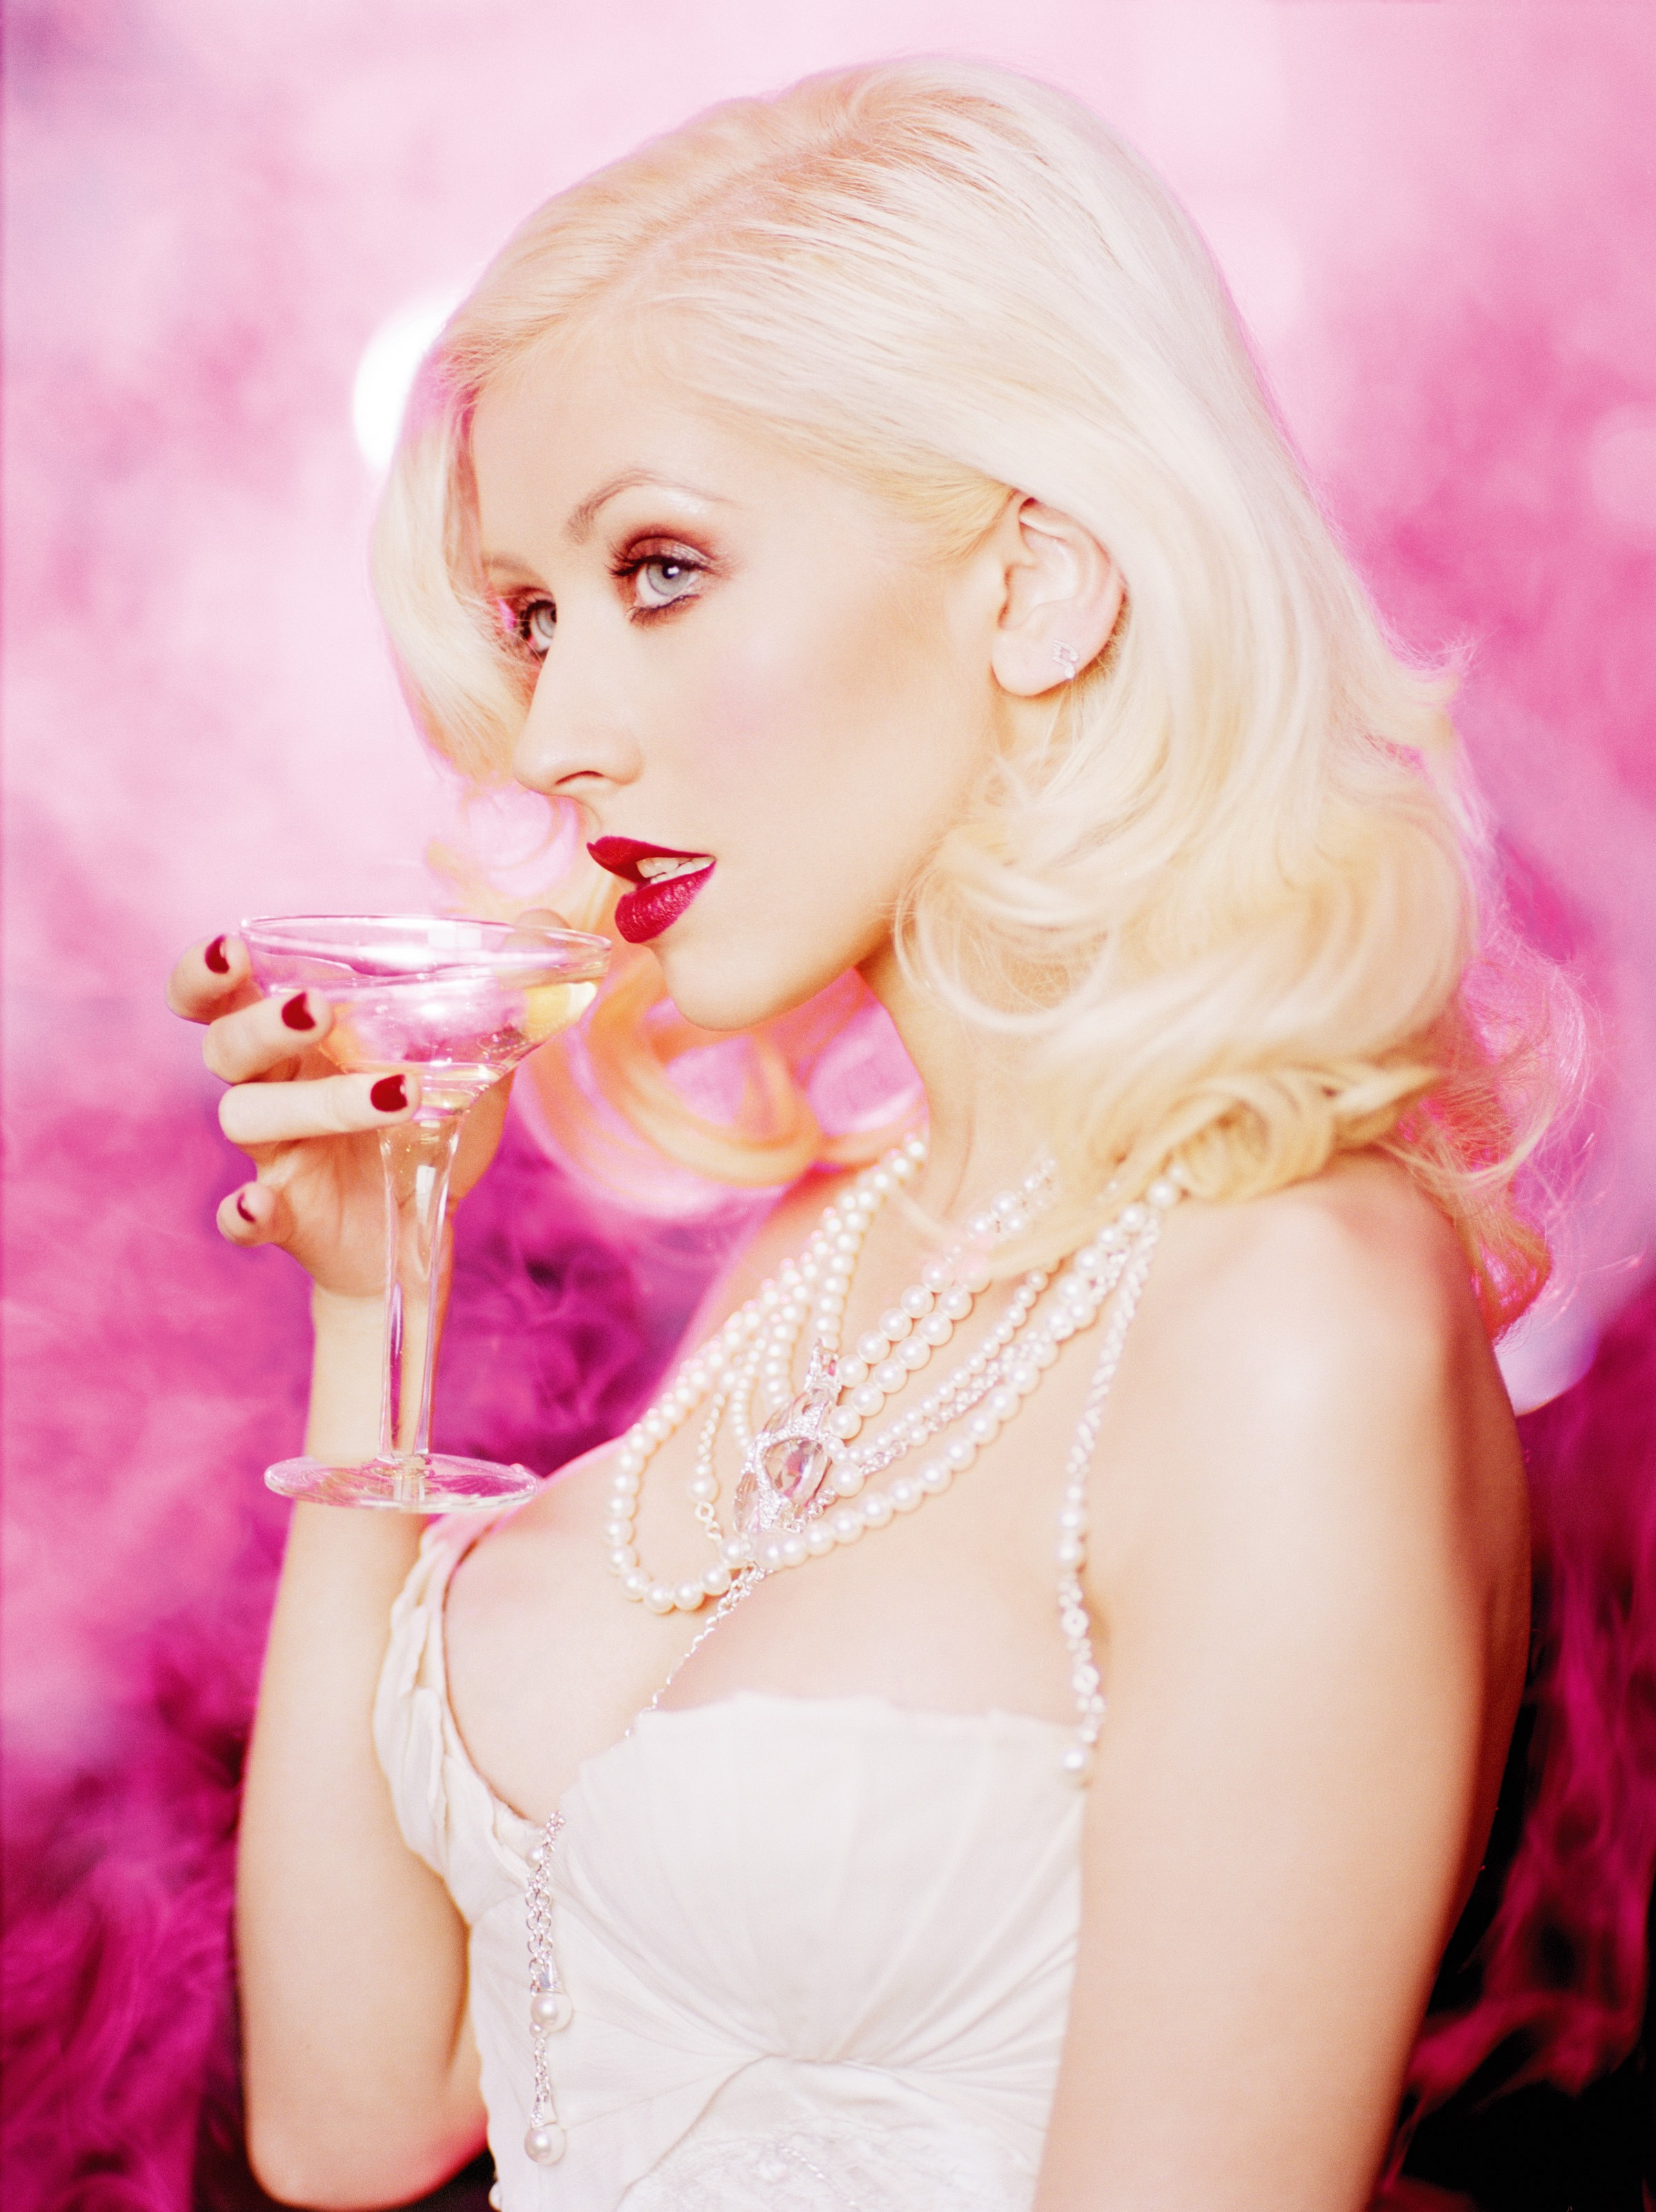 christina aguilera HD wallpaper 2400x3206